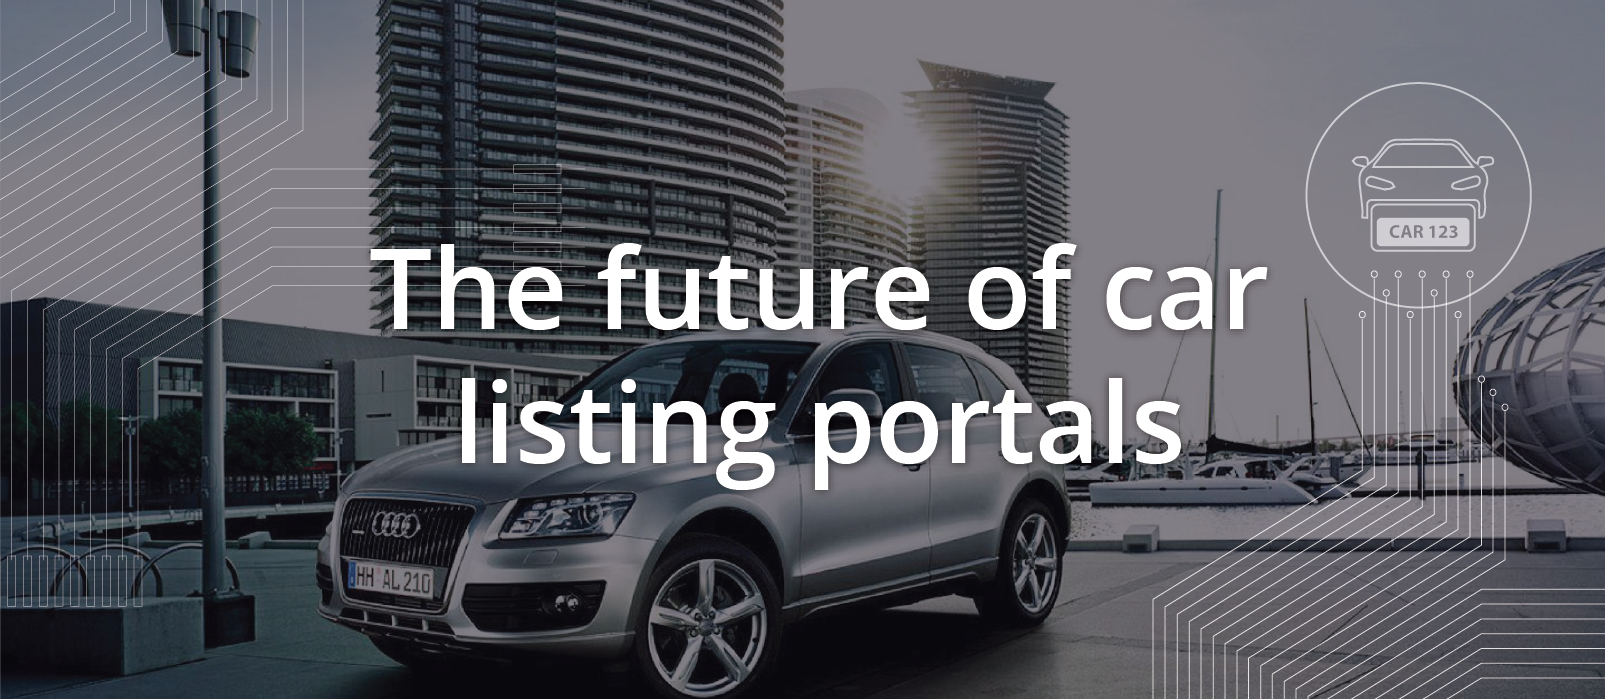 Why Computer Vision Technology Is The Future Of Car Listing Portals